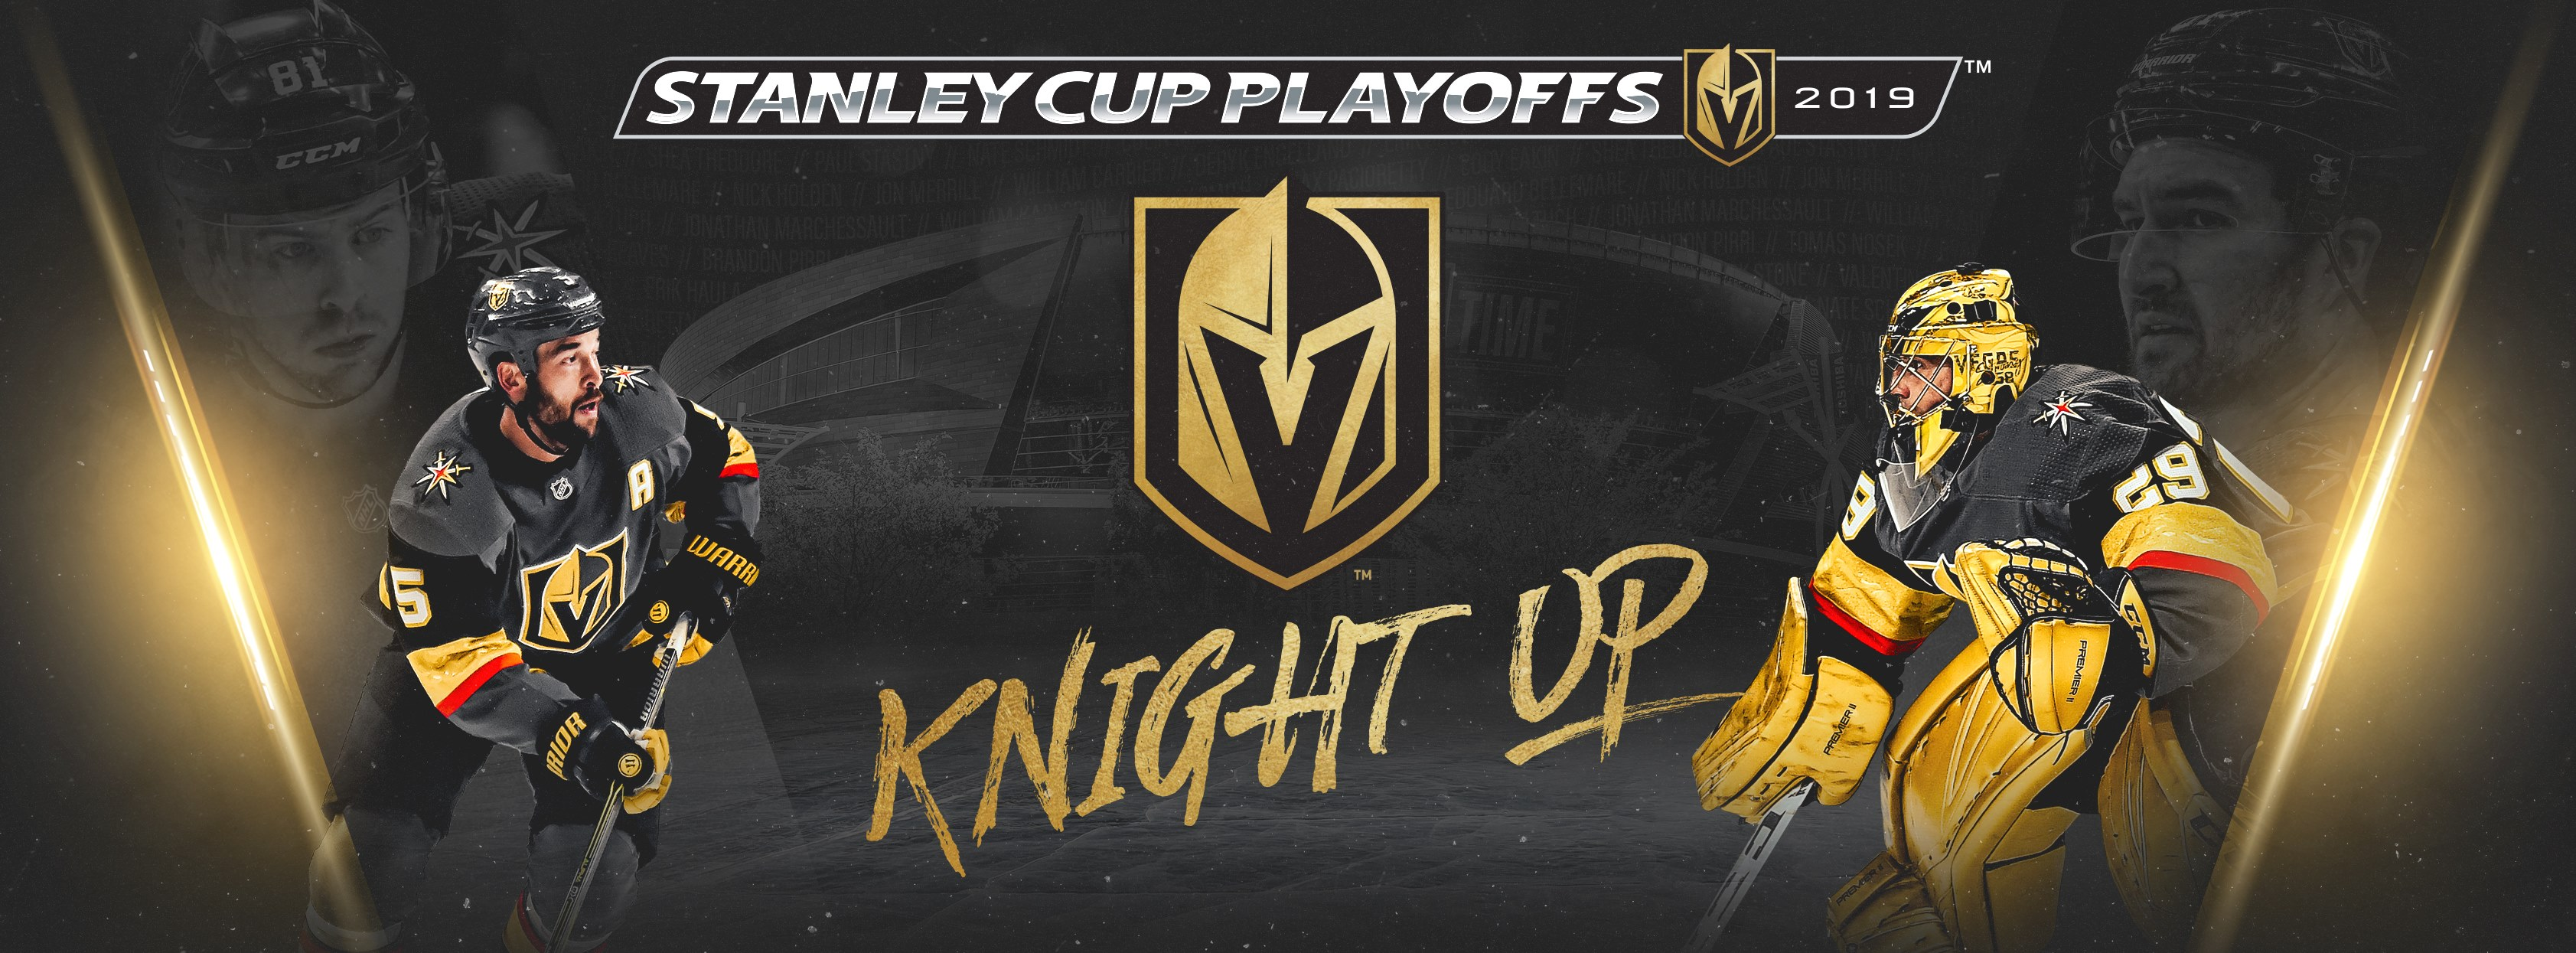 9787dcd9516 Foley Food And Wine Society - Shop Our Wines - Vegas Golden Knights